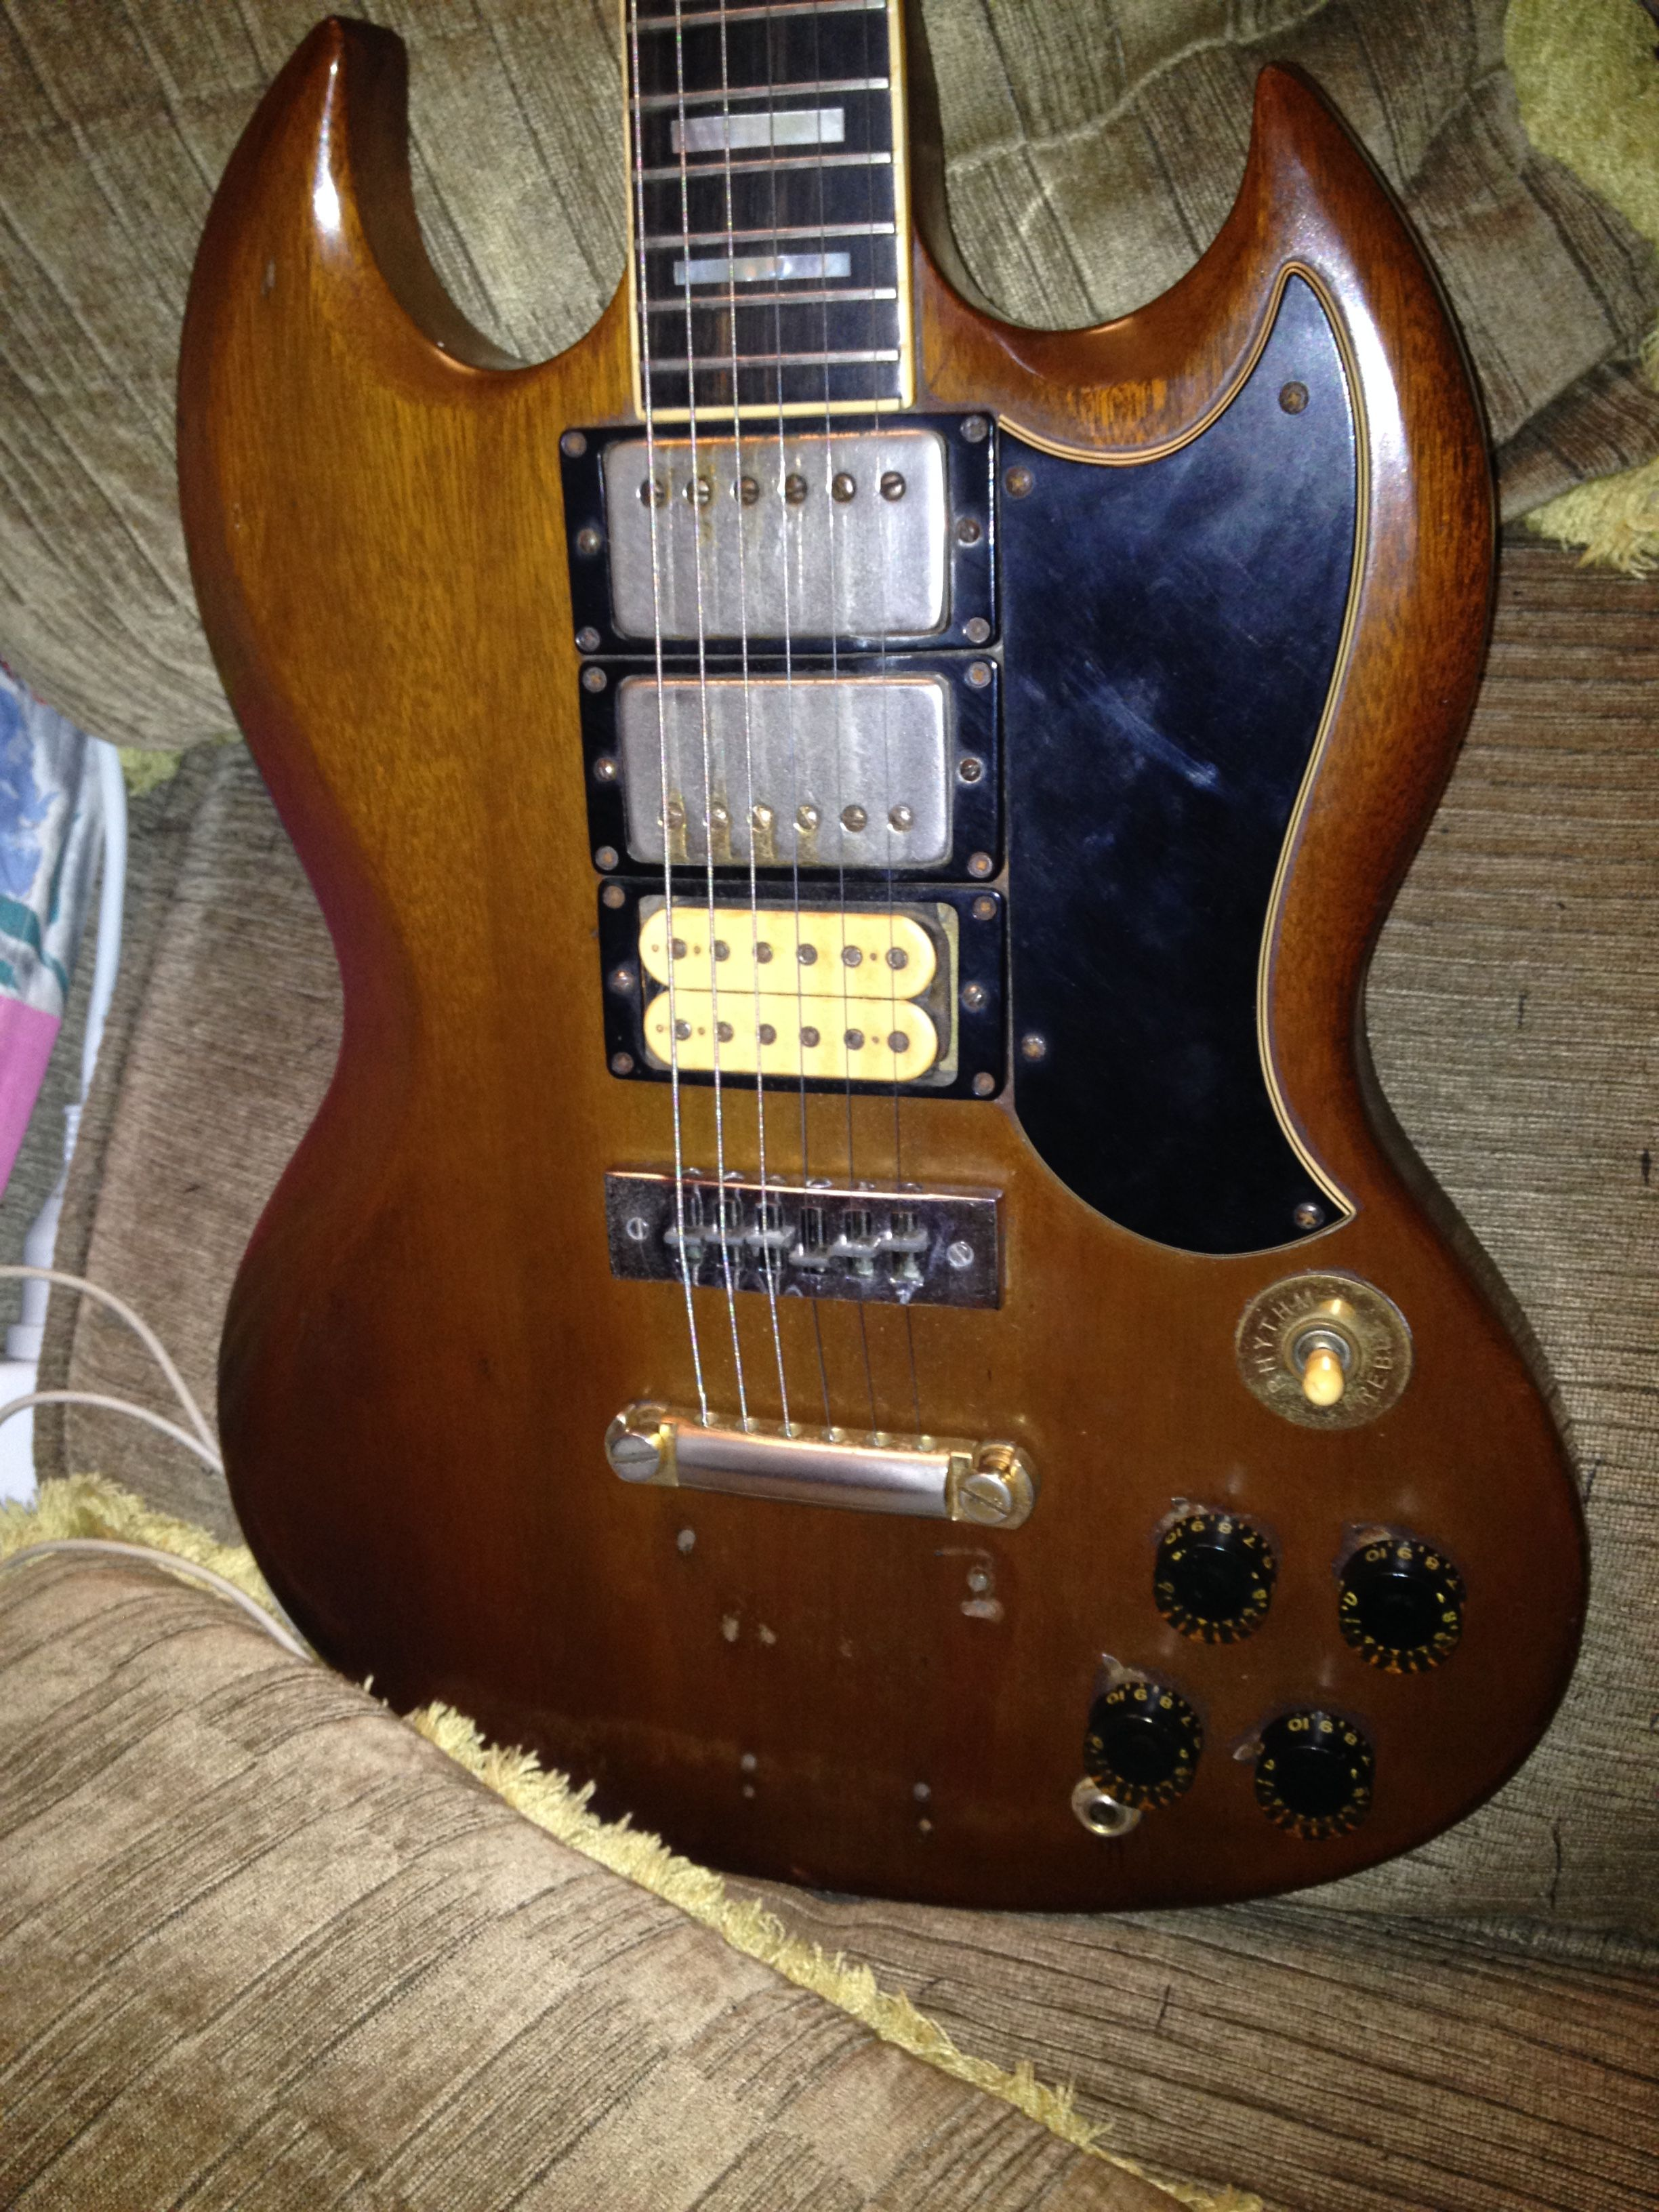 Dating Vintage Dimarzio Pickups Auto Electrical Wiring Diagram Of Tokairegistrycom View Topic Les Paul Modern My 1974 Gibson Sg Custom In Walnut With Original 70 U0026 39 S